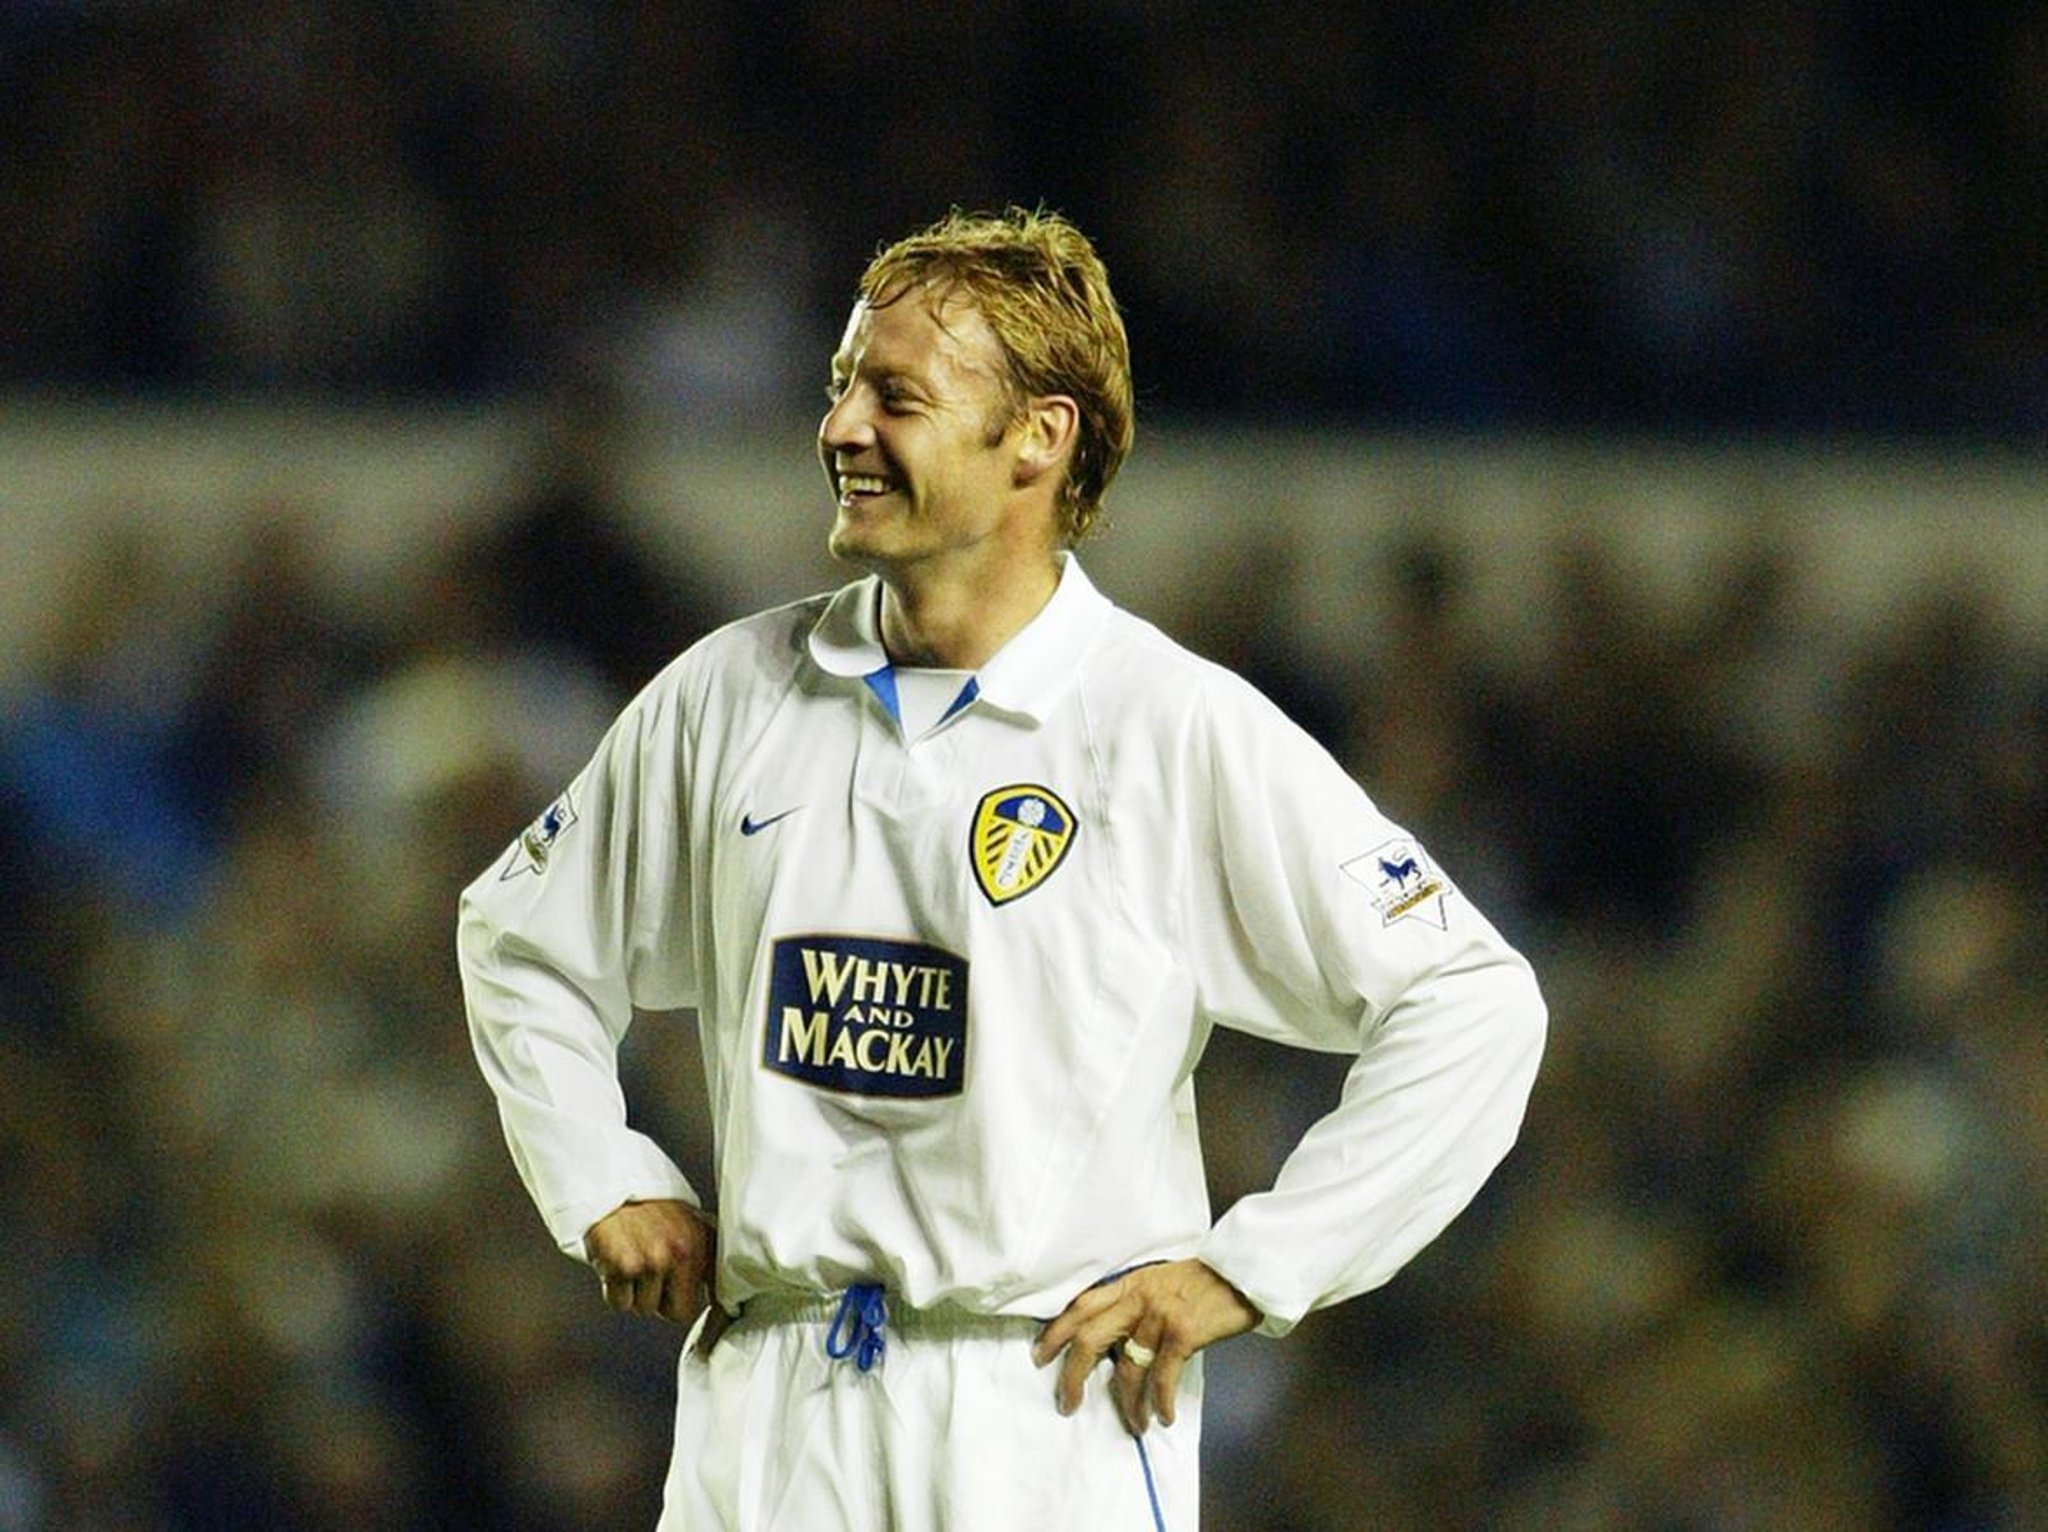 Batty the comedian and Wilcox impressions helped lift Leeds - Dominic Matteo